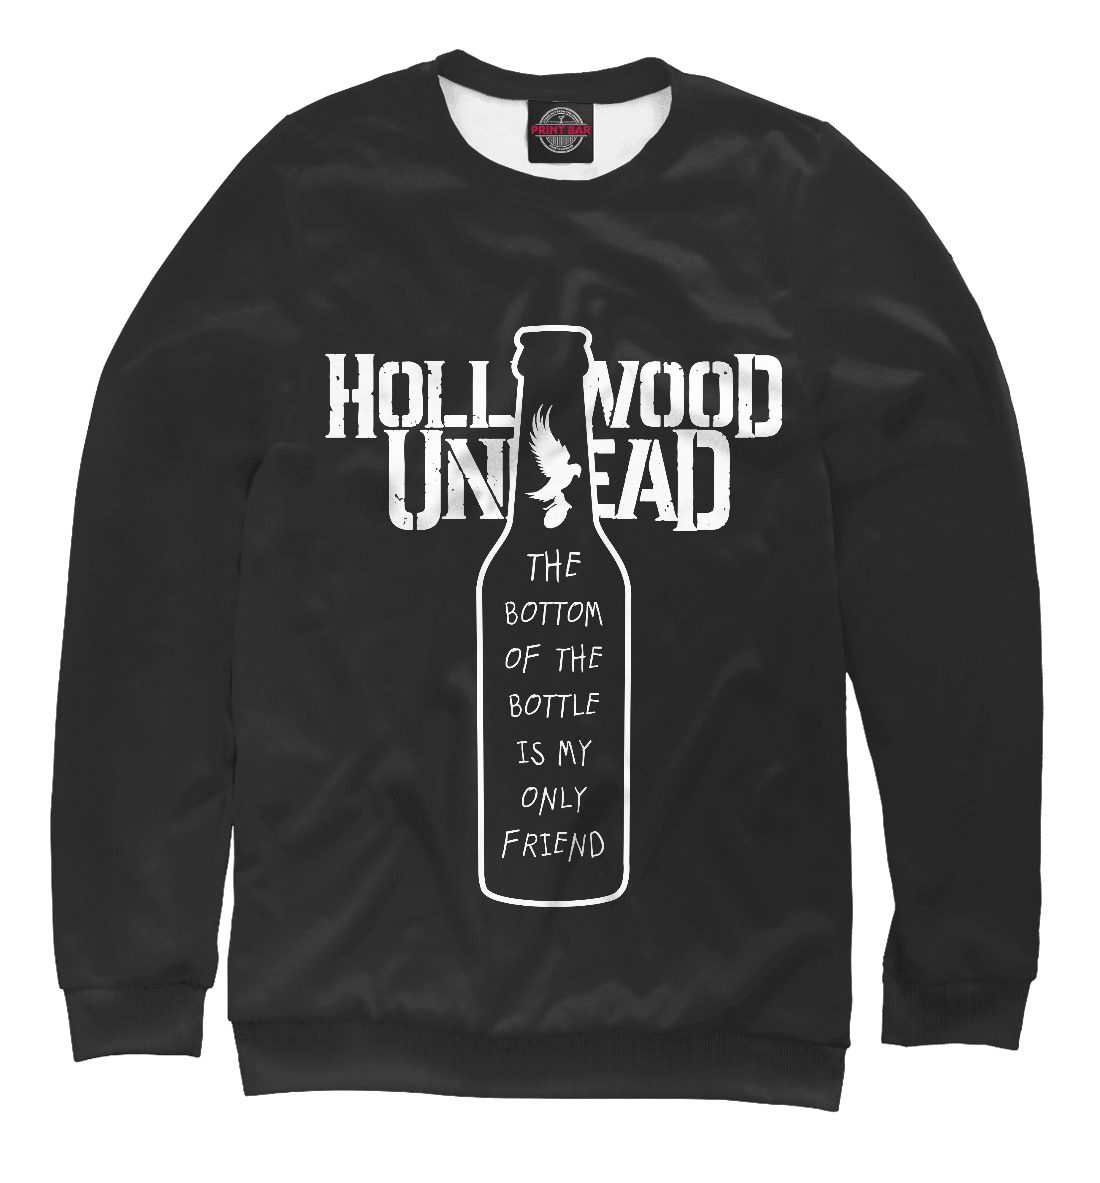 Купить Hollywood Undead Bullet lyrics, Printbar, Свитшоты, HLW-460040-swi-1